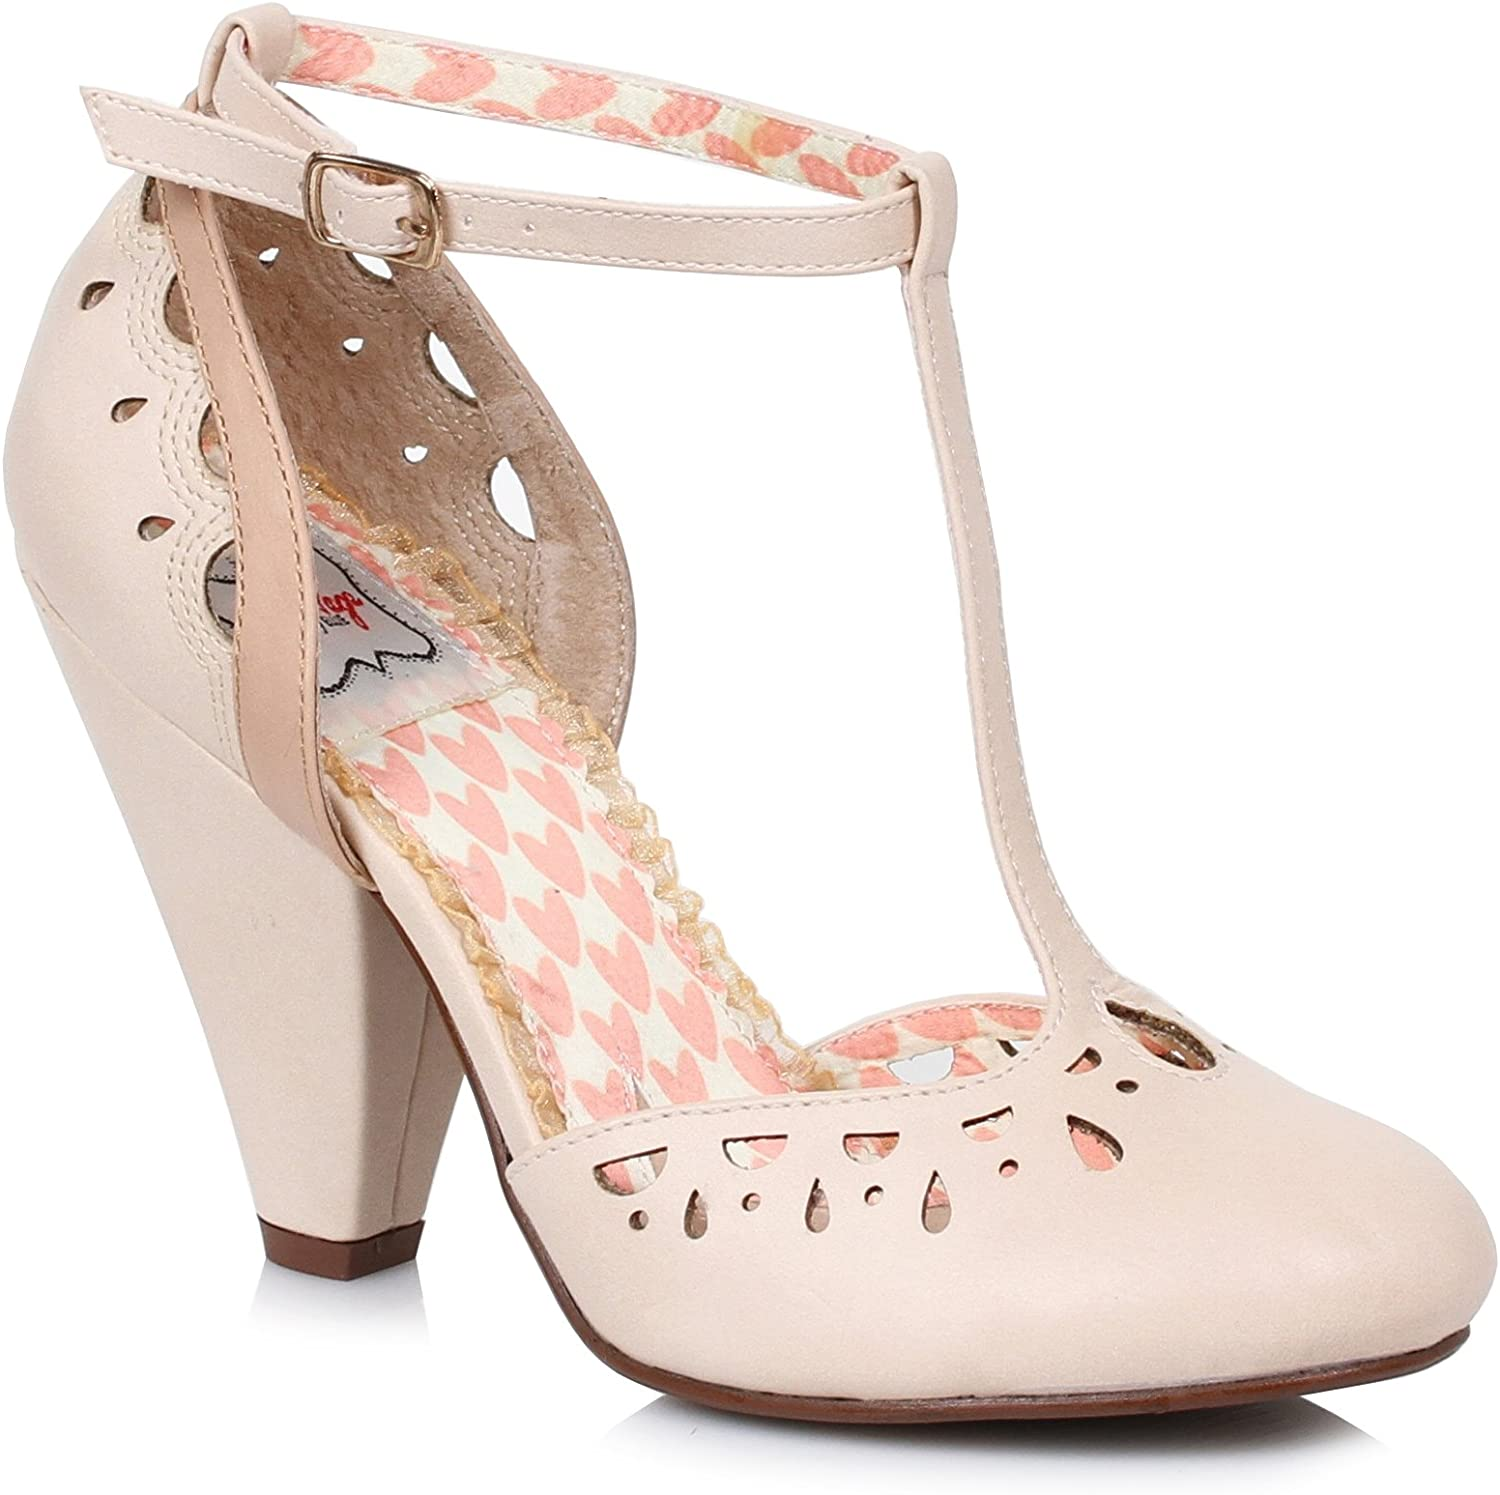 Ellie shoes E-BP403-Elsie T Strap Closed Toe Cut Out Heel Nude 5